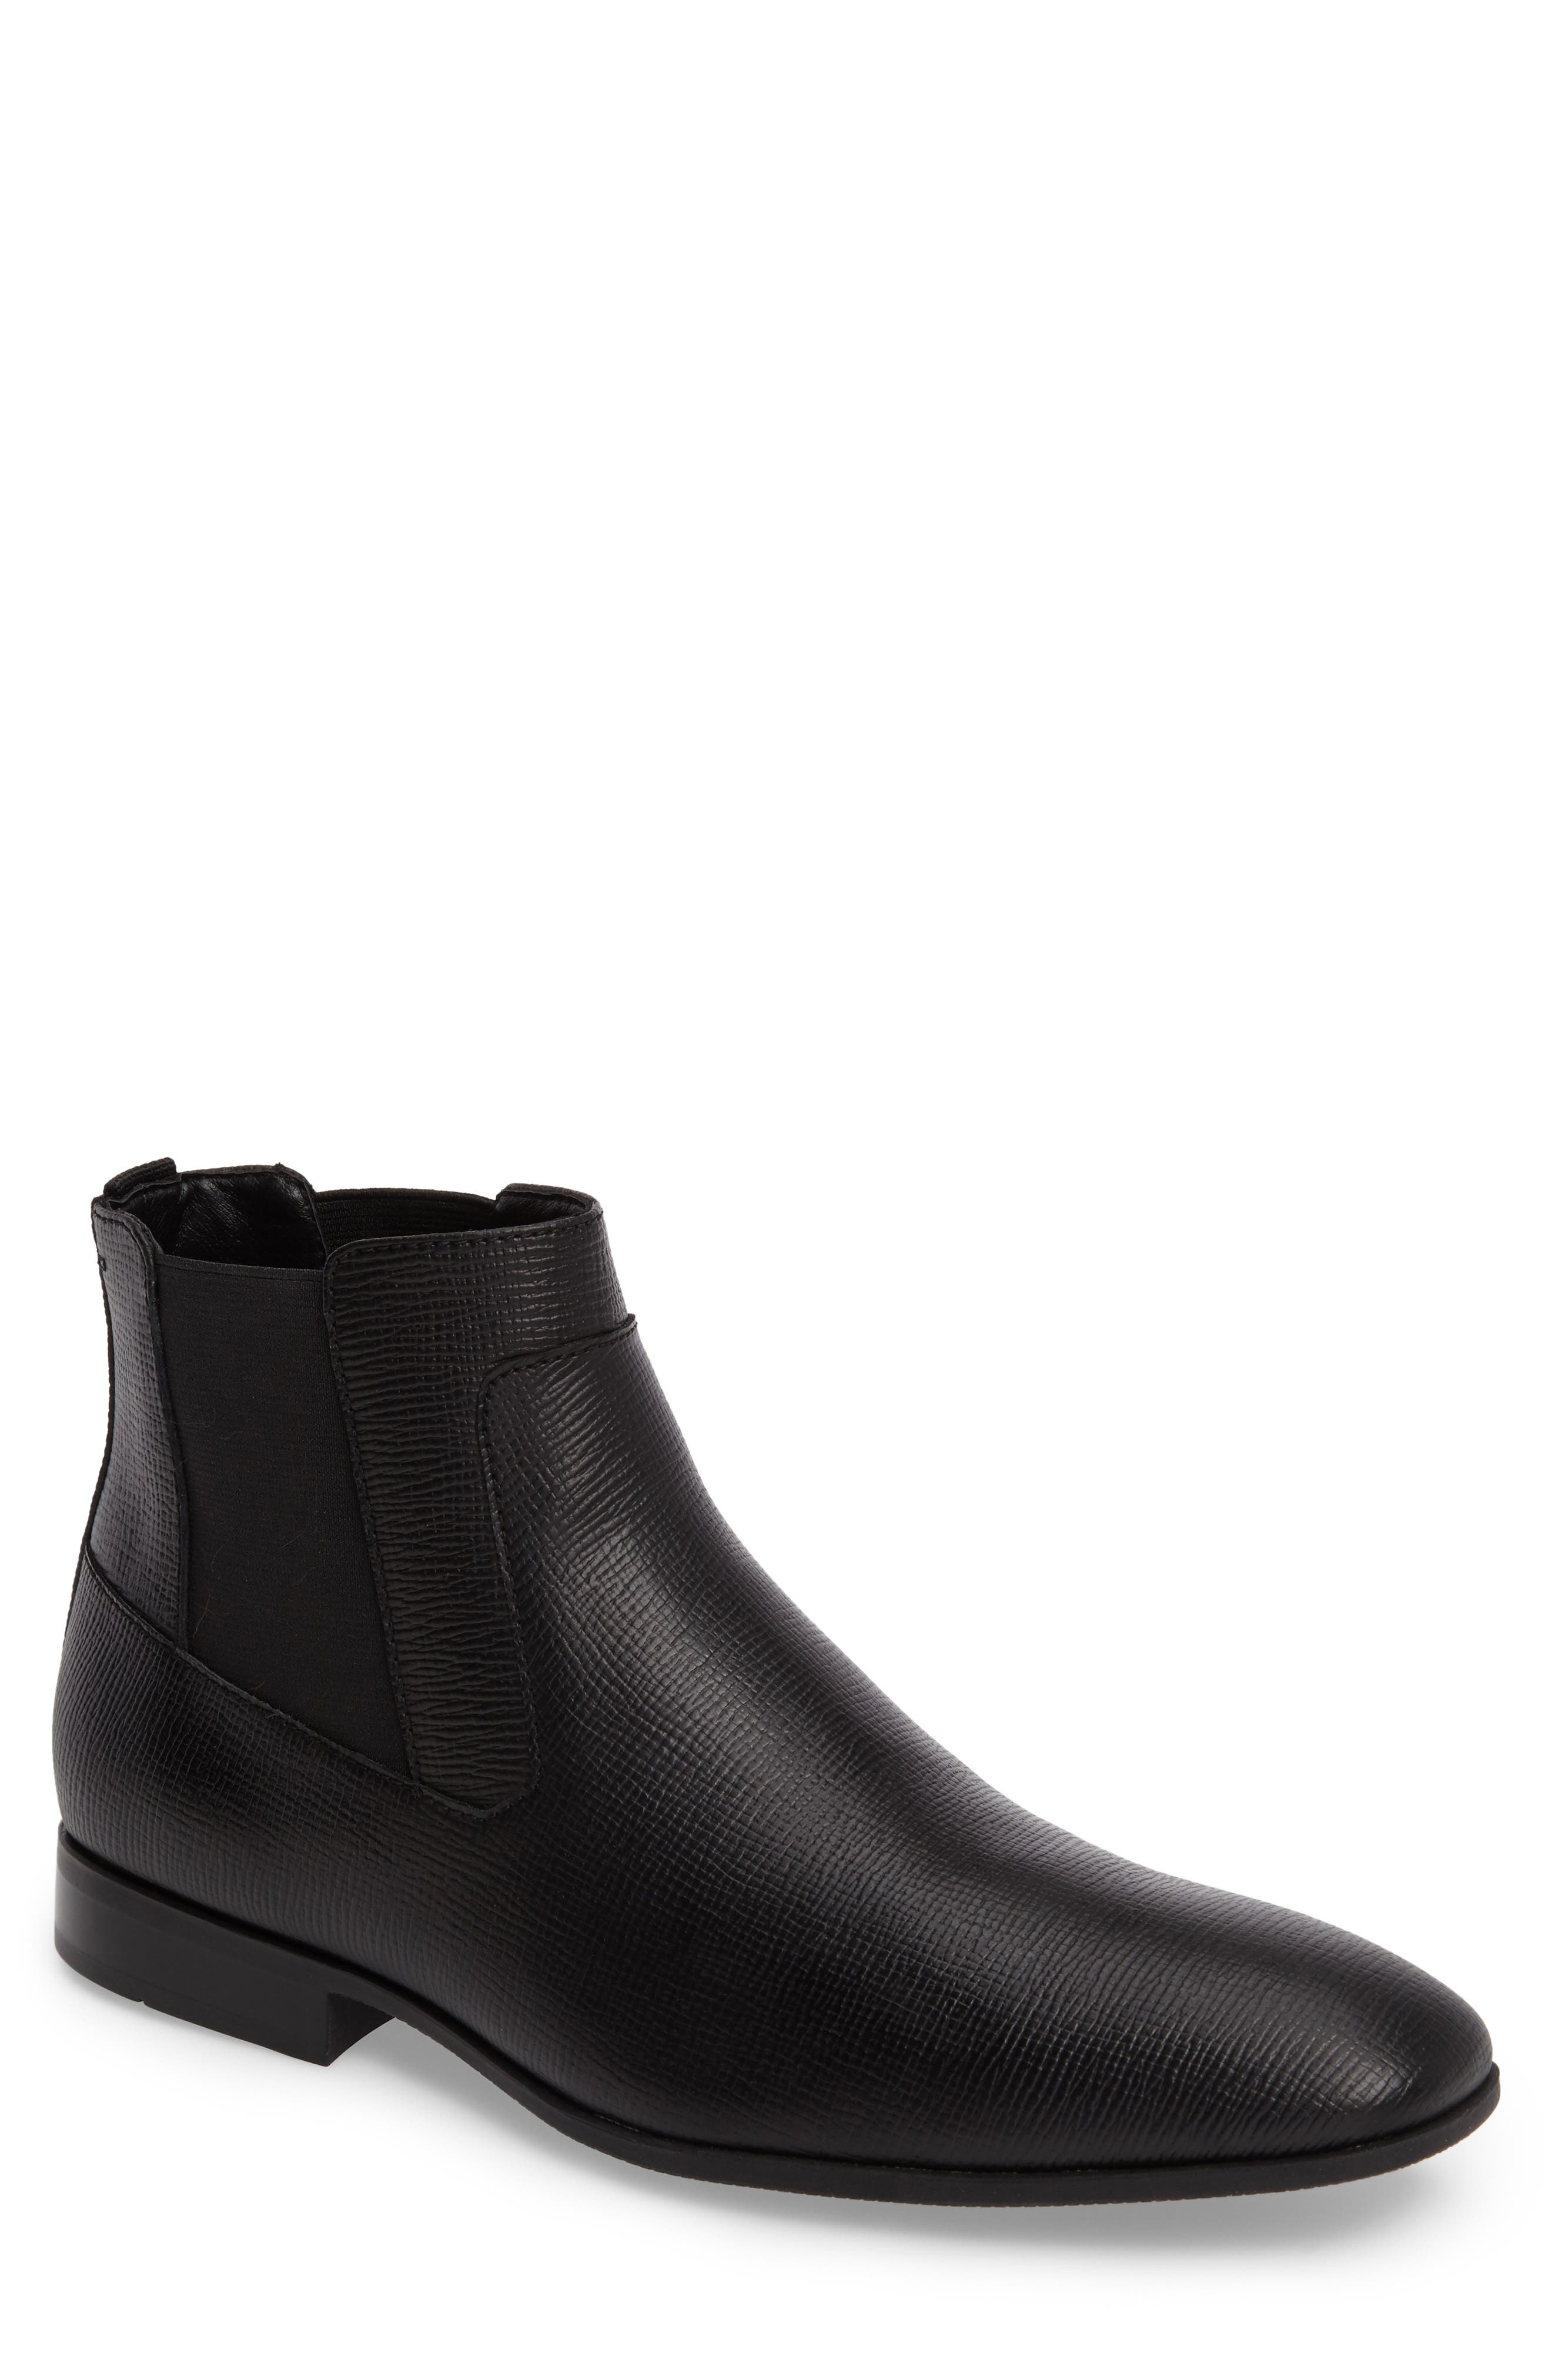 Dress Shoes Mens Boots | Nordstrom